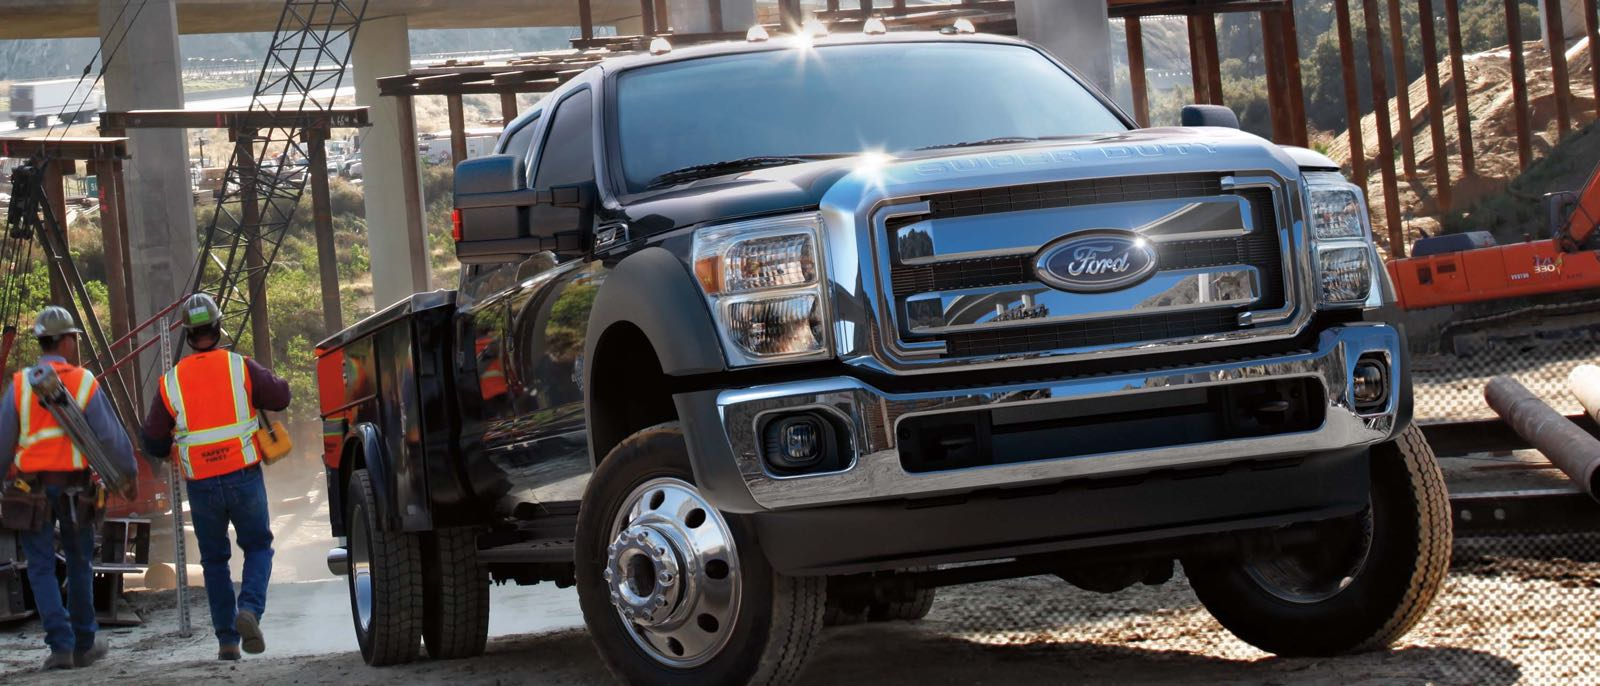 2016 Ford Super Duty exterior up close